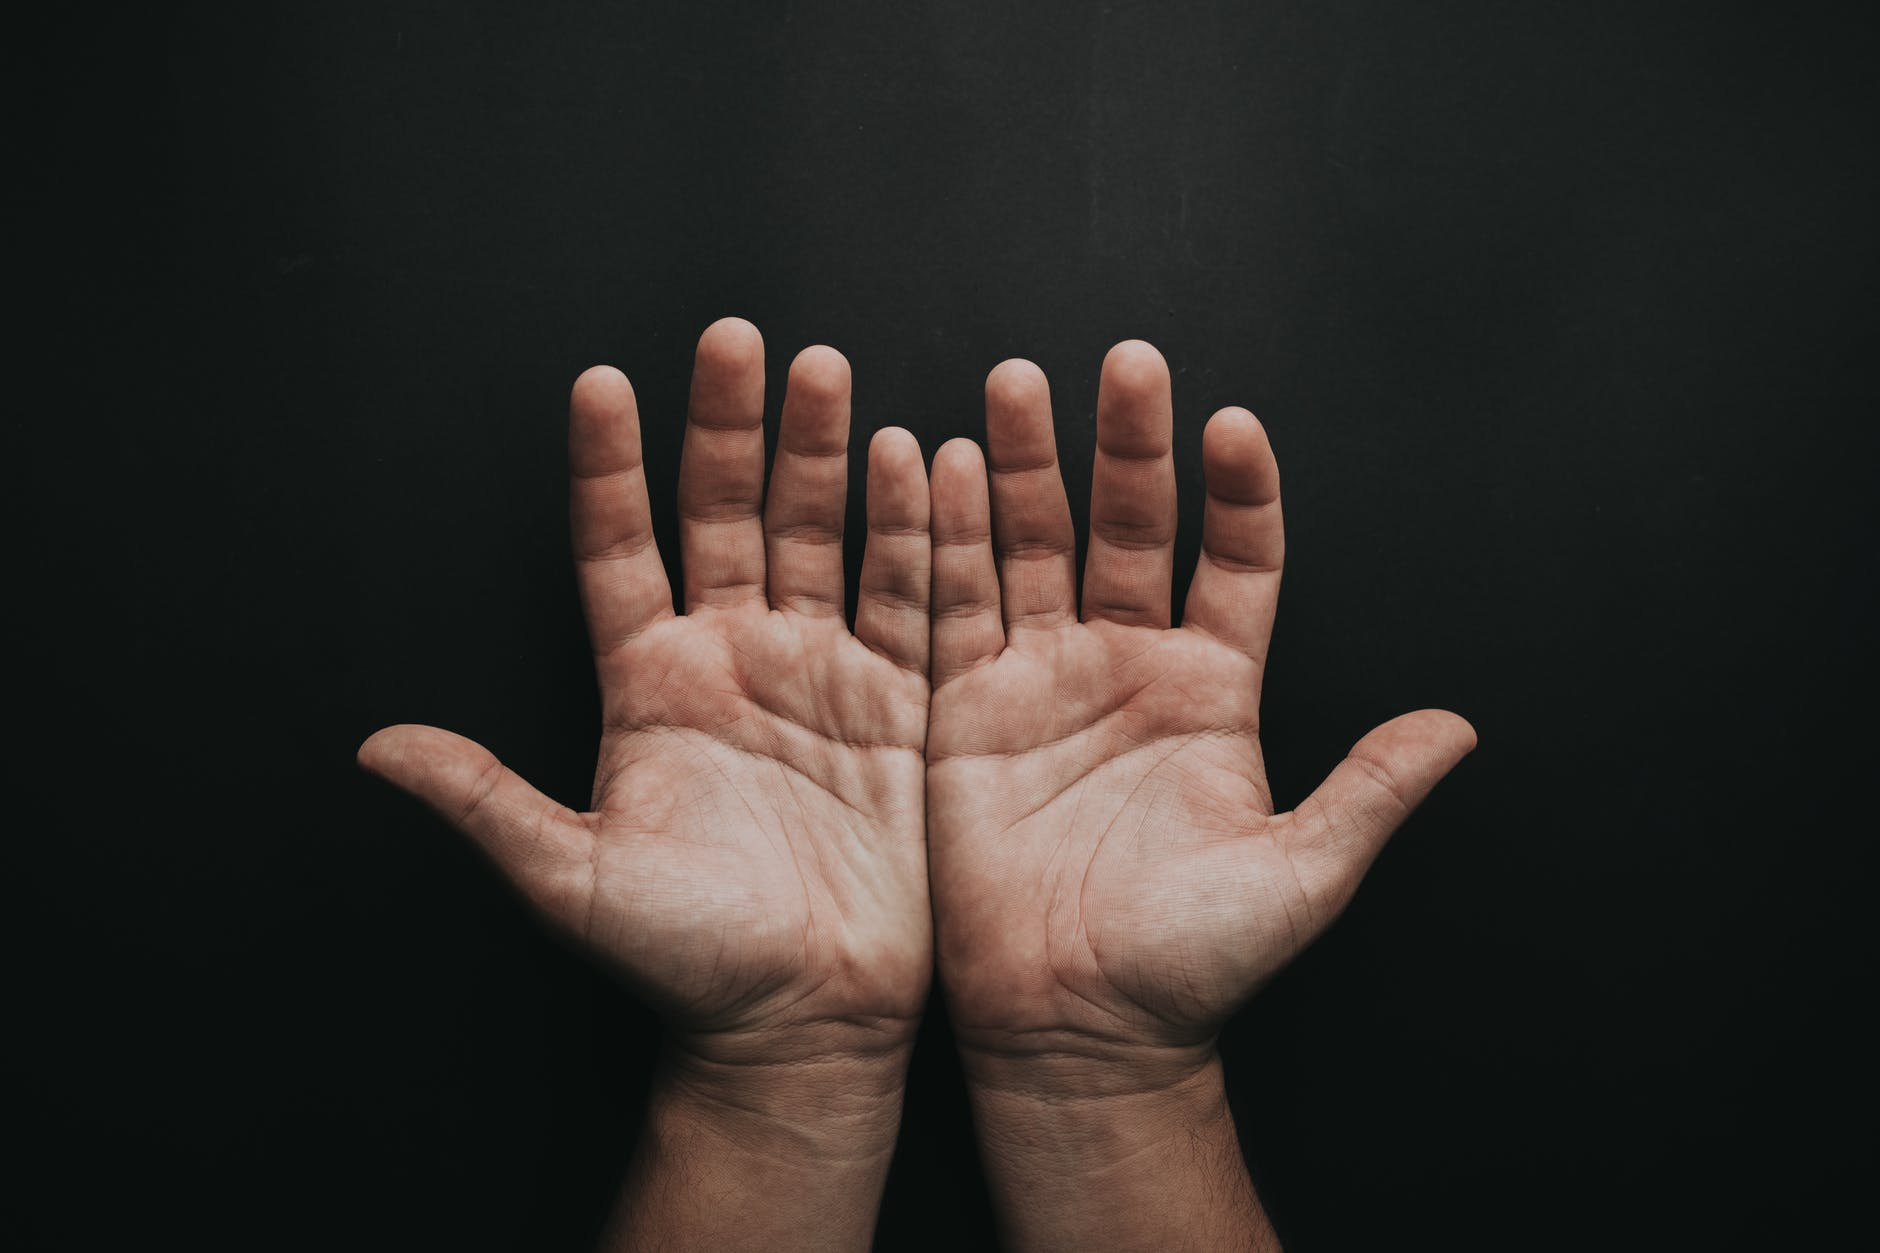 A pair of hands - the only thing you can rely on when facing DIY relocation challenges.